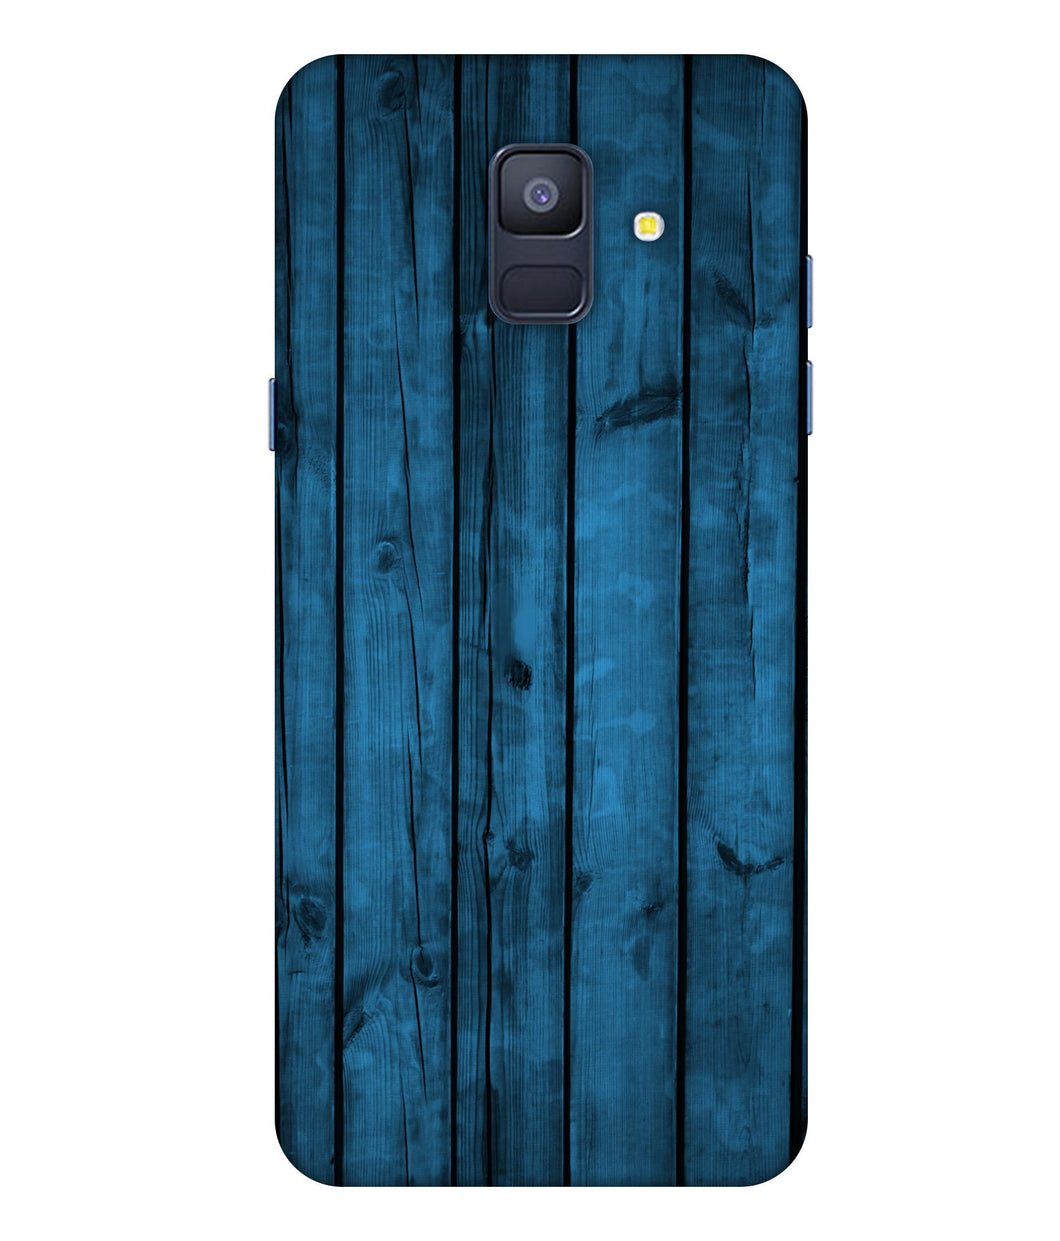 Samsung Galaxy A8 Plus Blue Woods Mobile cover